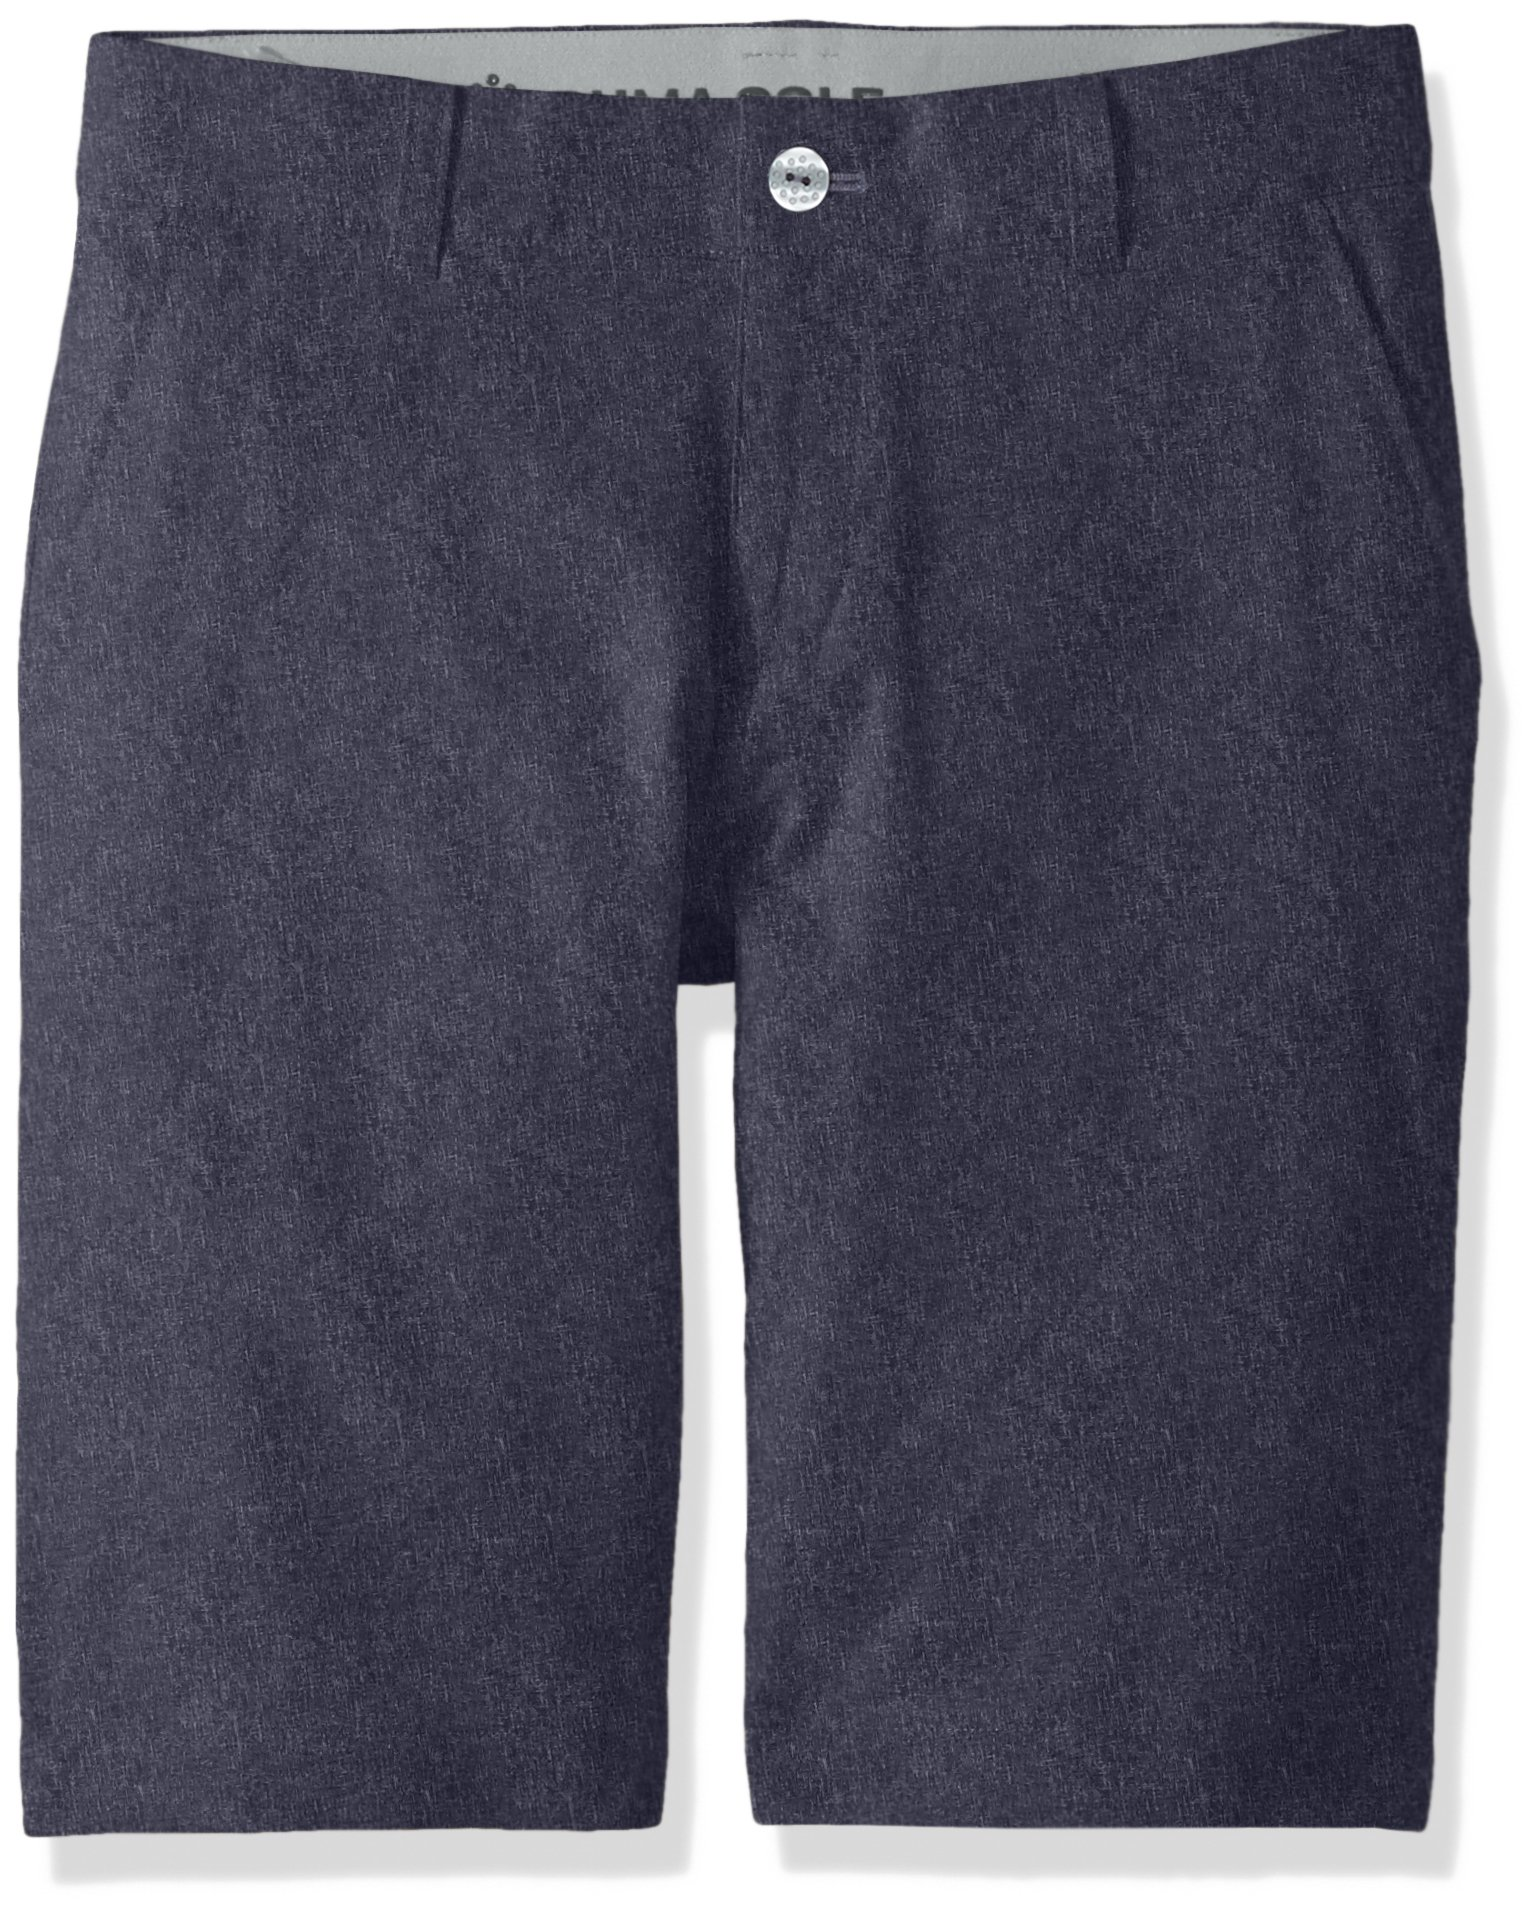 PUMA Golf Teen 2018 Boy's Heather Pounce Short, Peacoat, Large by PUMA